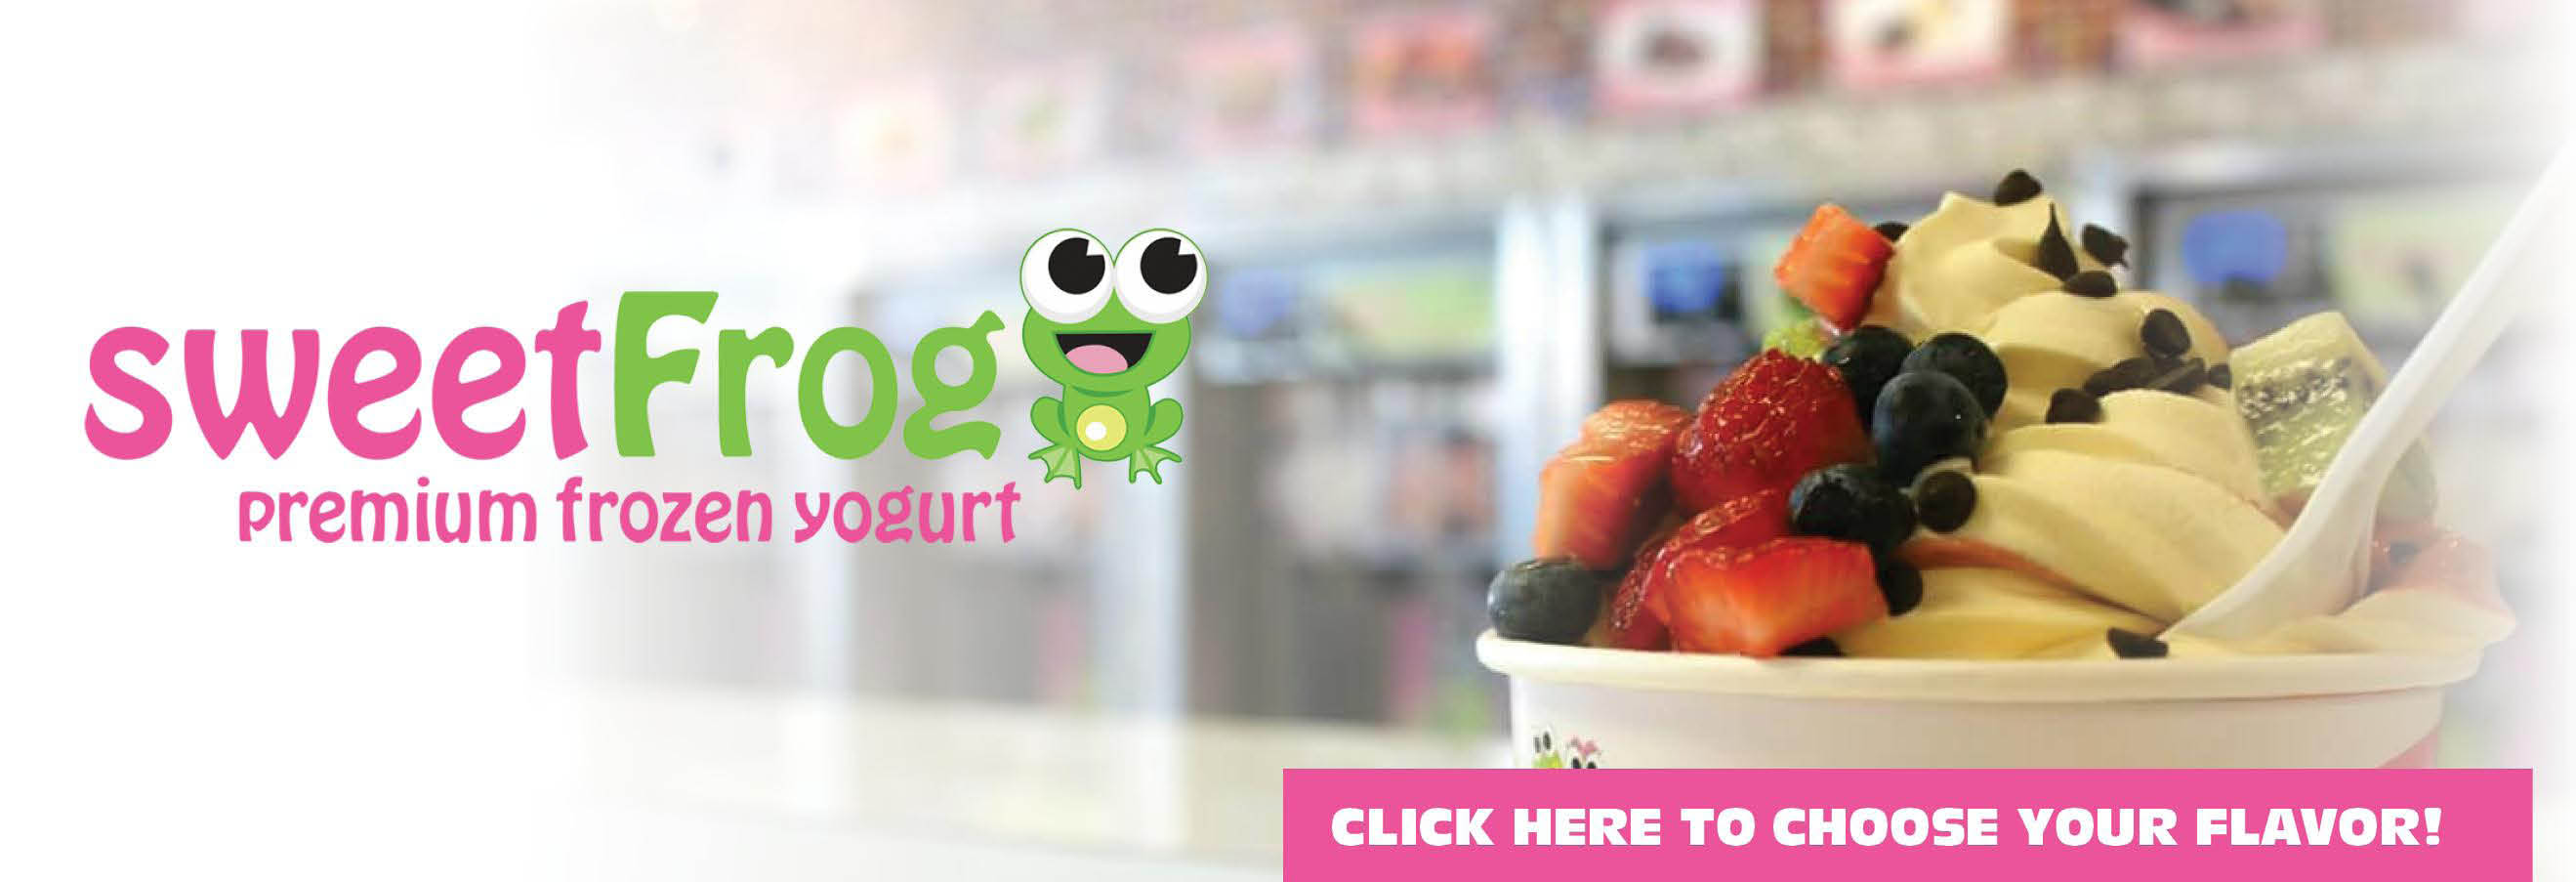 Sweet Frog, Frozen Yogurt, Ice Cream, Dessert,